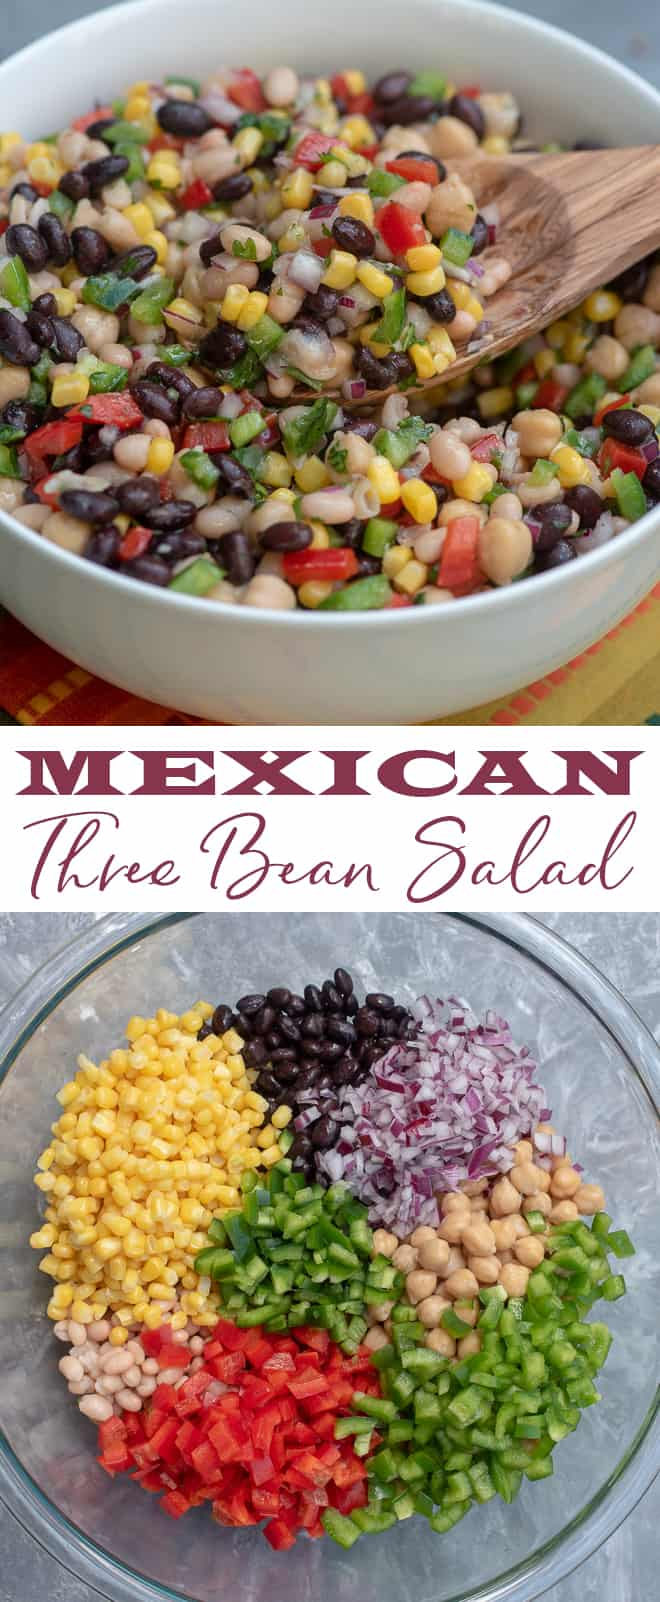 A vertical two image collage of Mexican Three Bean Salad in a white bowl and the ingredients in a clear glass bowl with text overlay.